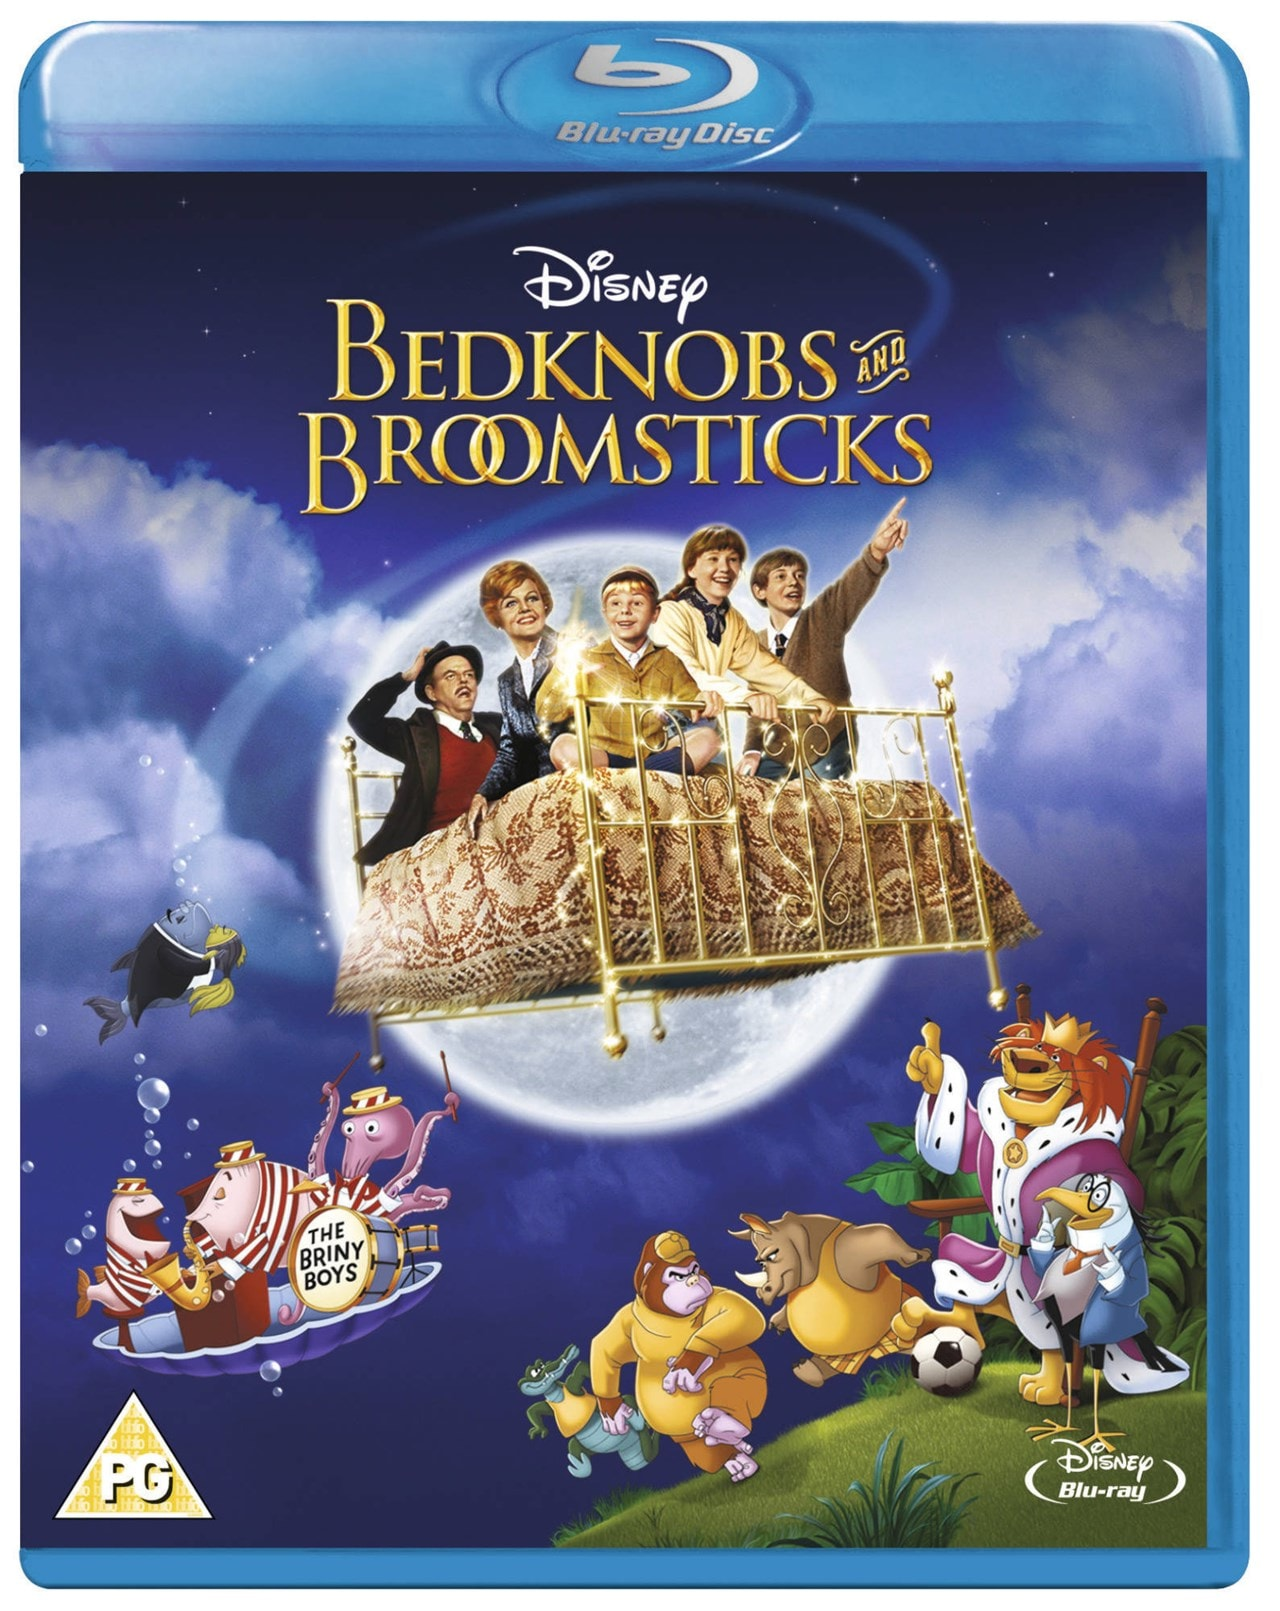 Bedknobs and Broomsticks - 3